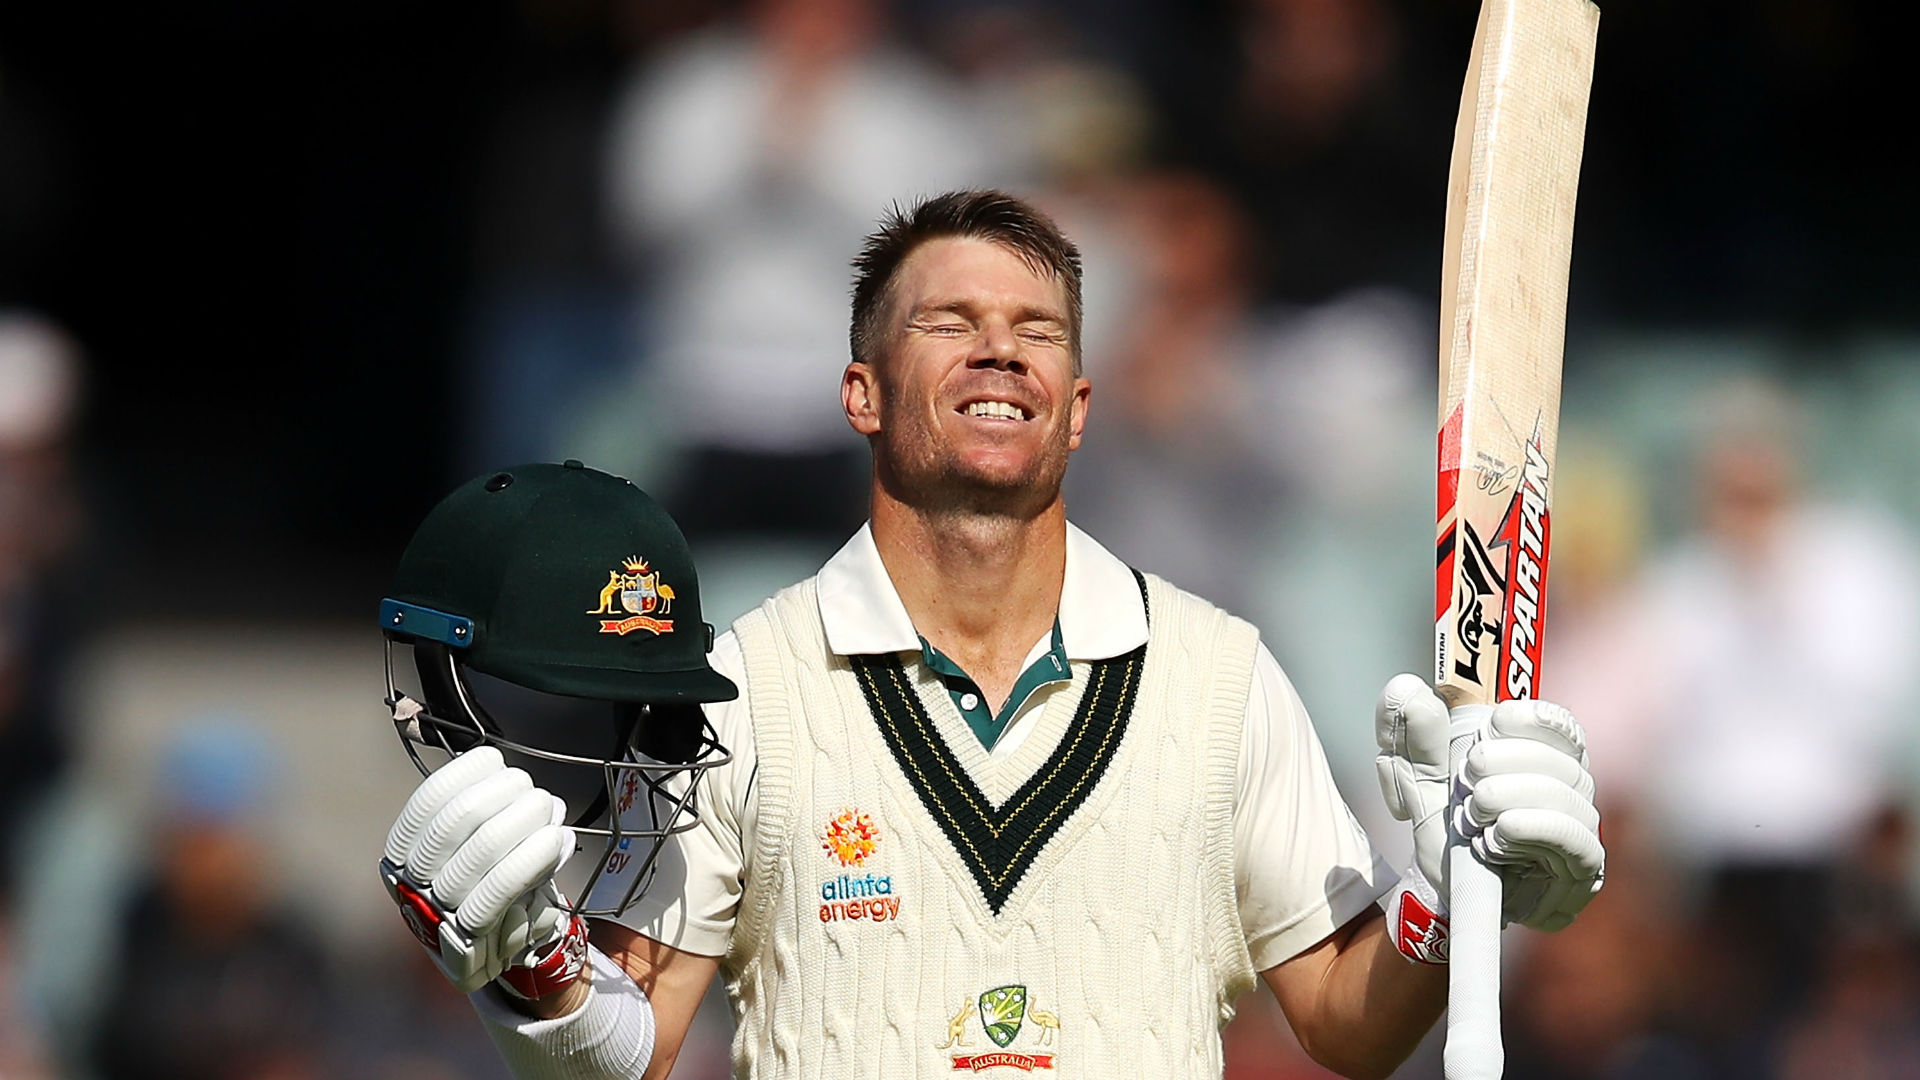 The highest Adelaide score and 10th on the all-time list - Opta data on Warner's 335